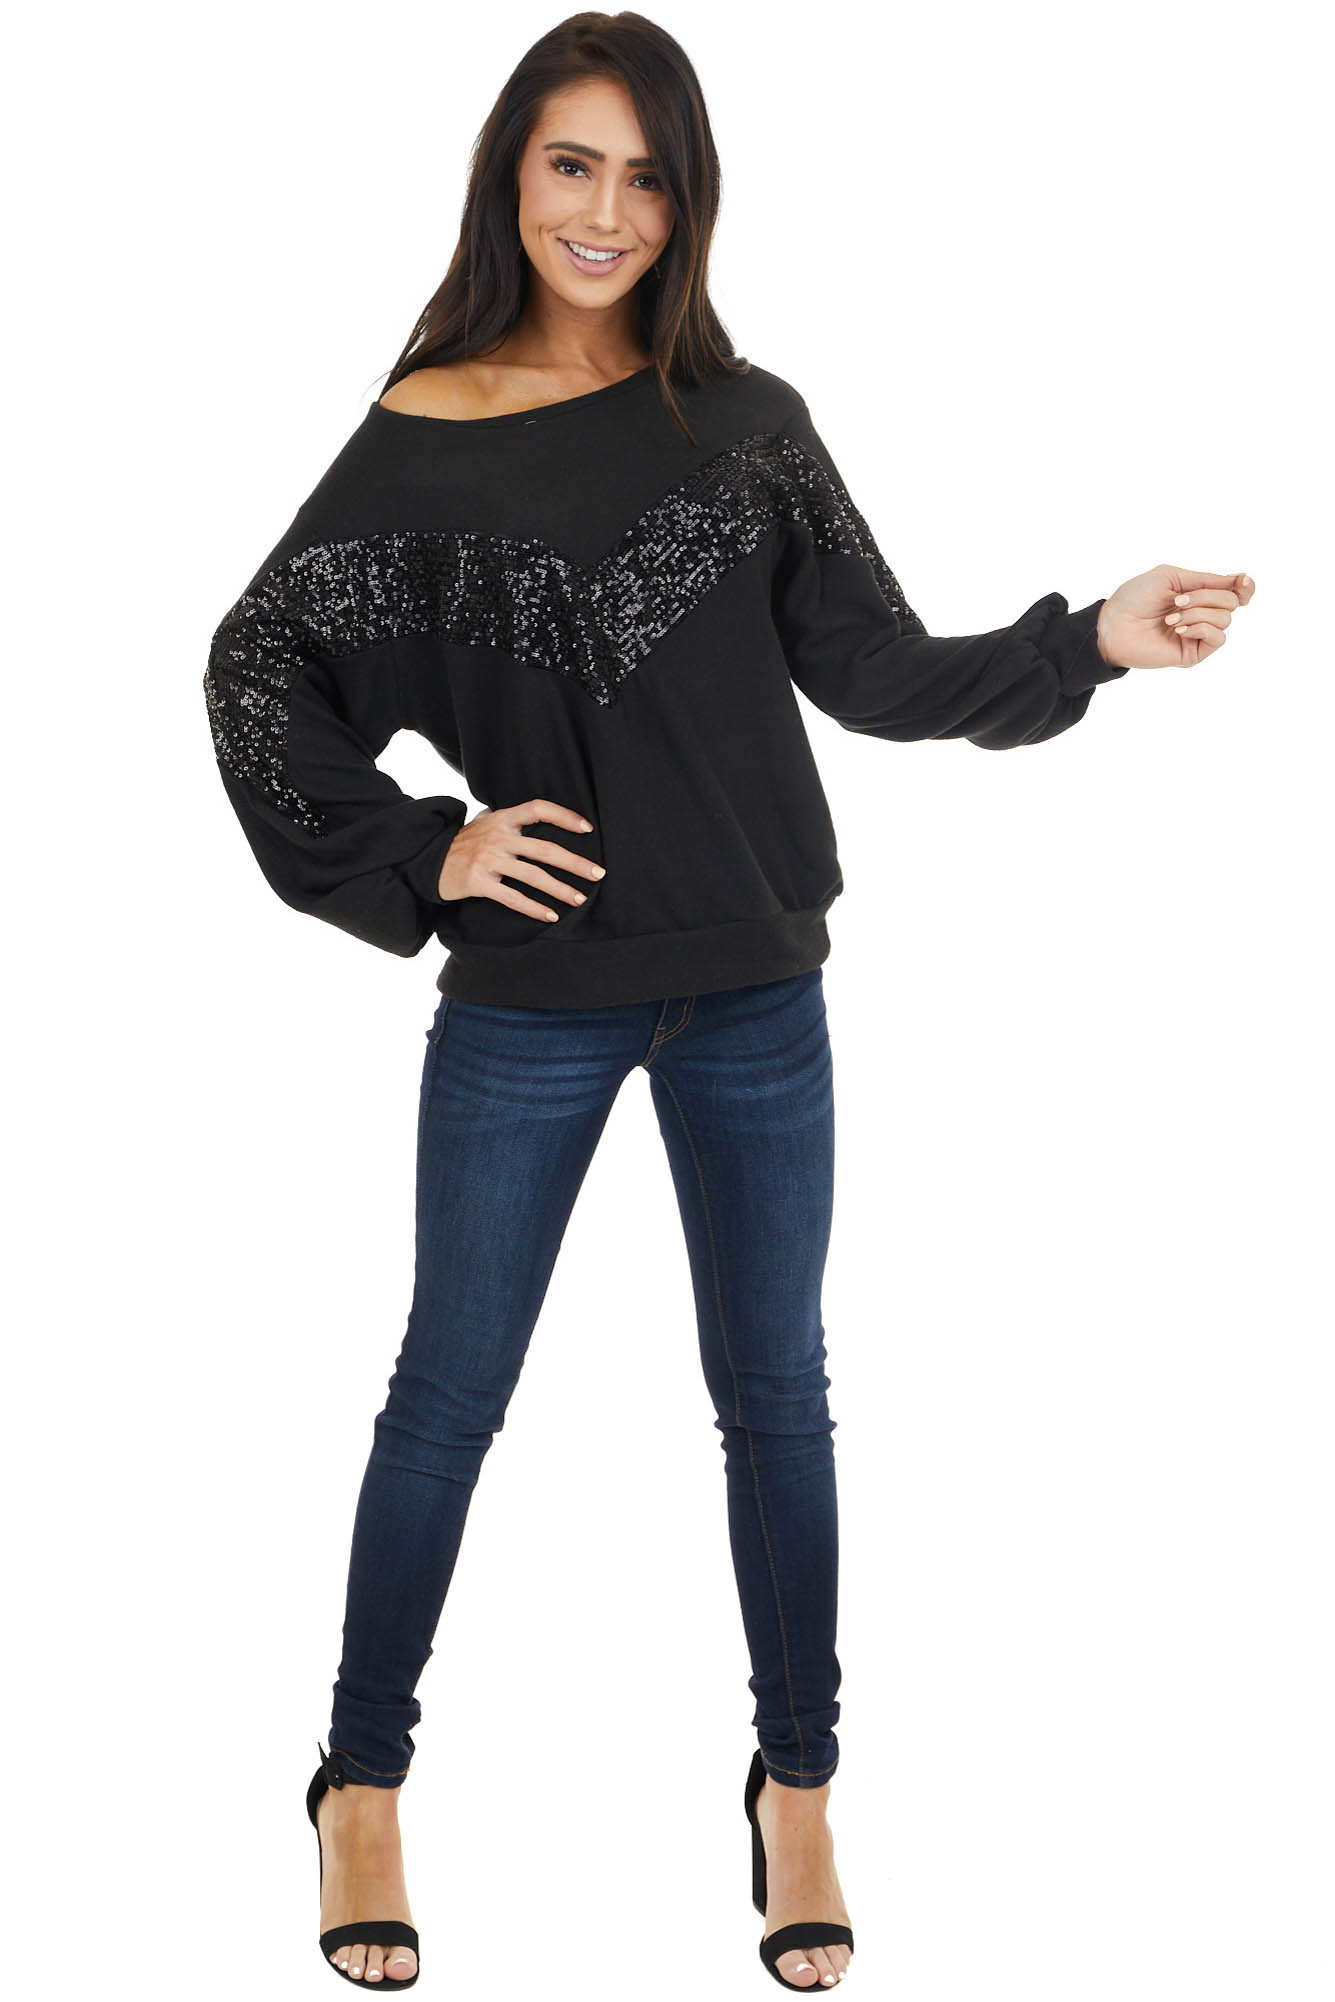 Black Long Sleeve Top with Chevron Shaped Sequin Pattern